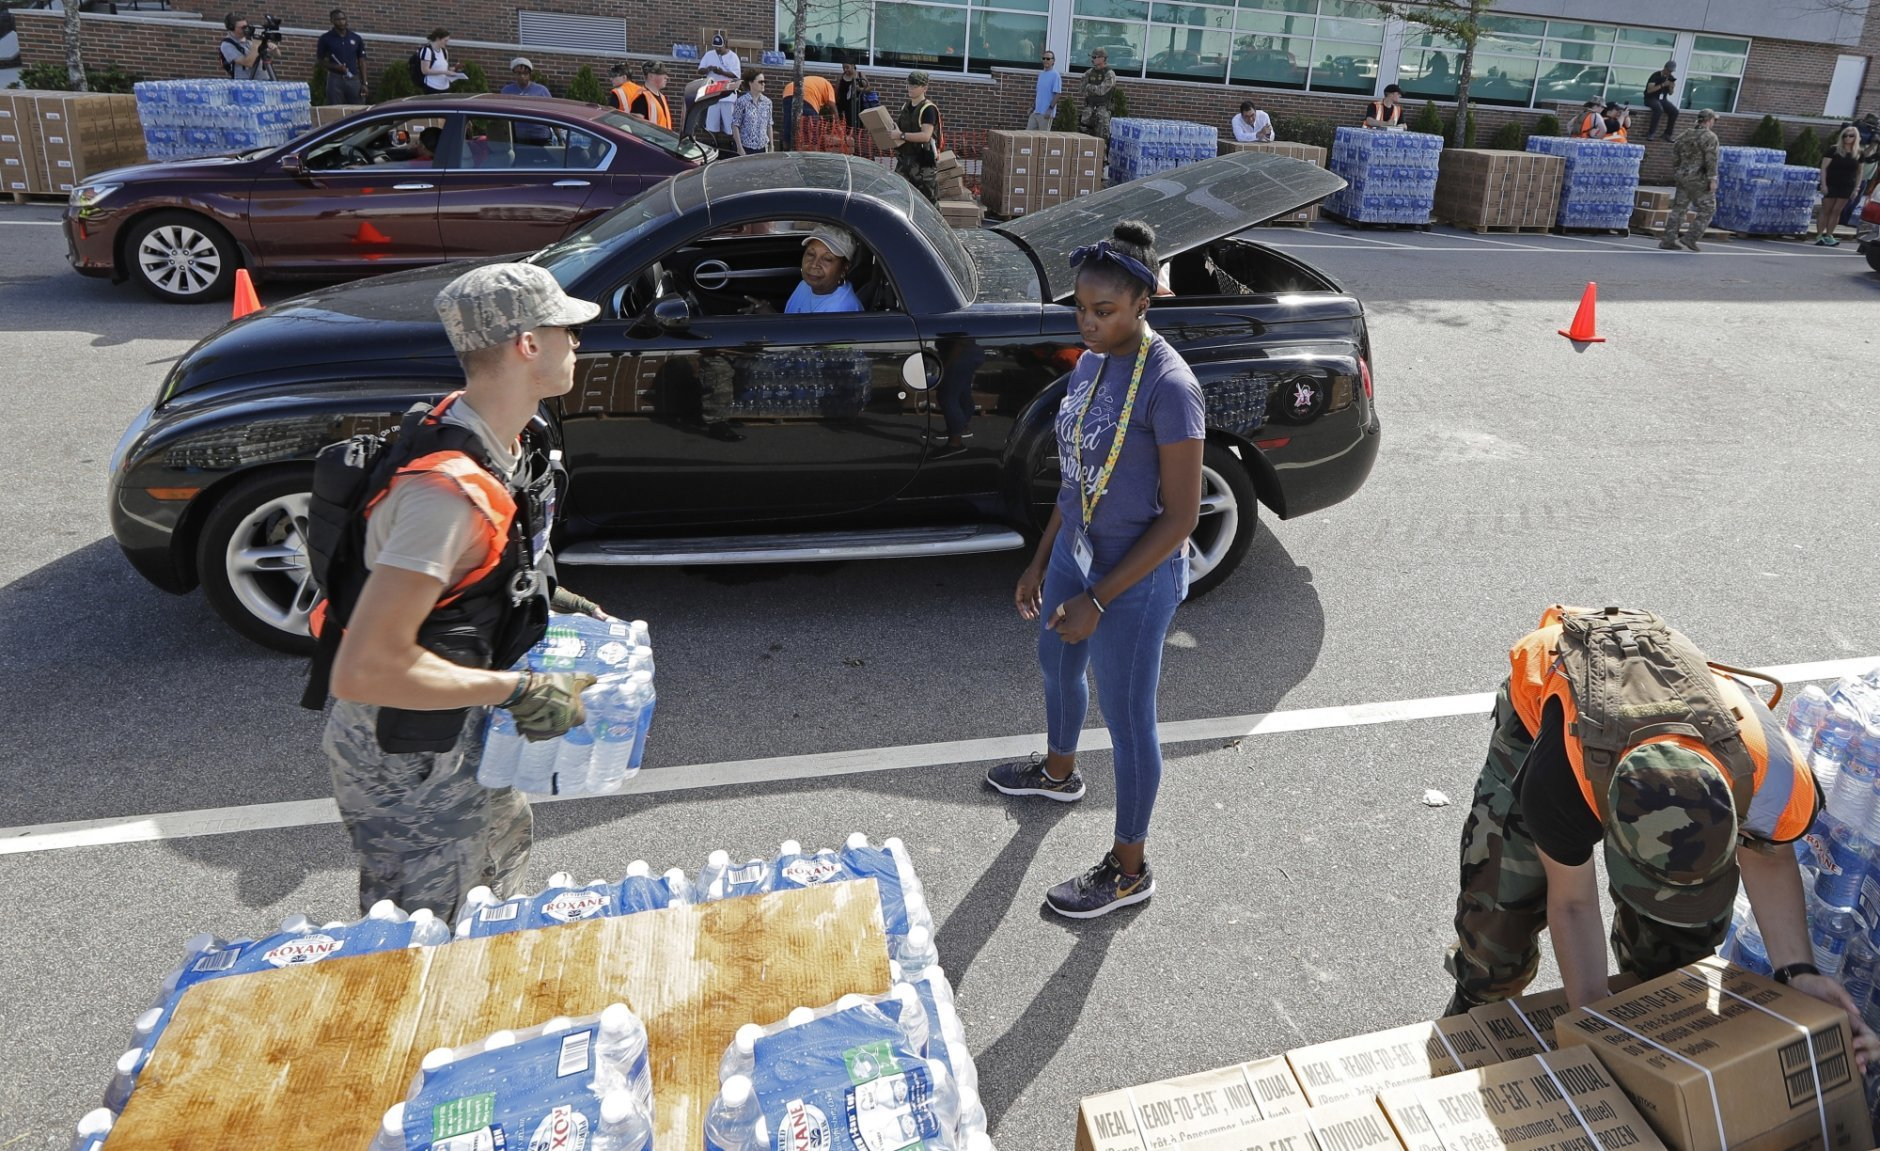 Members of the Civil Air Patrol load cars with MREs, (Meals Ready To Eat) water and tarps at distribution area in Wilmington, N.C. Tuesday, Sept. 18, 2018. (AP Photo/Chuck Burton)